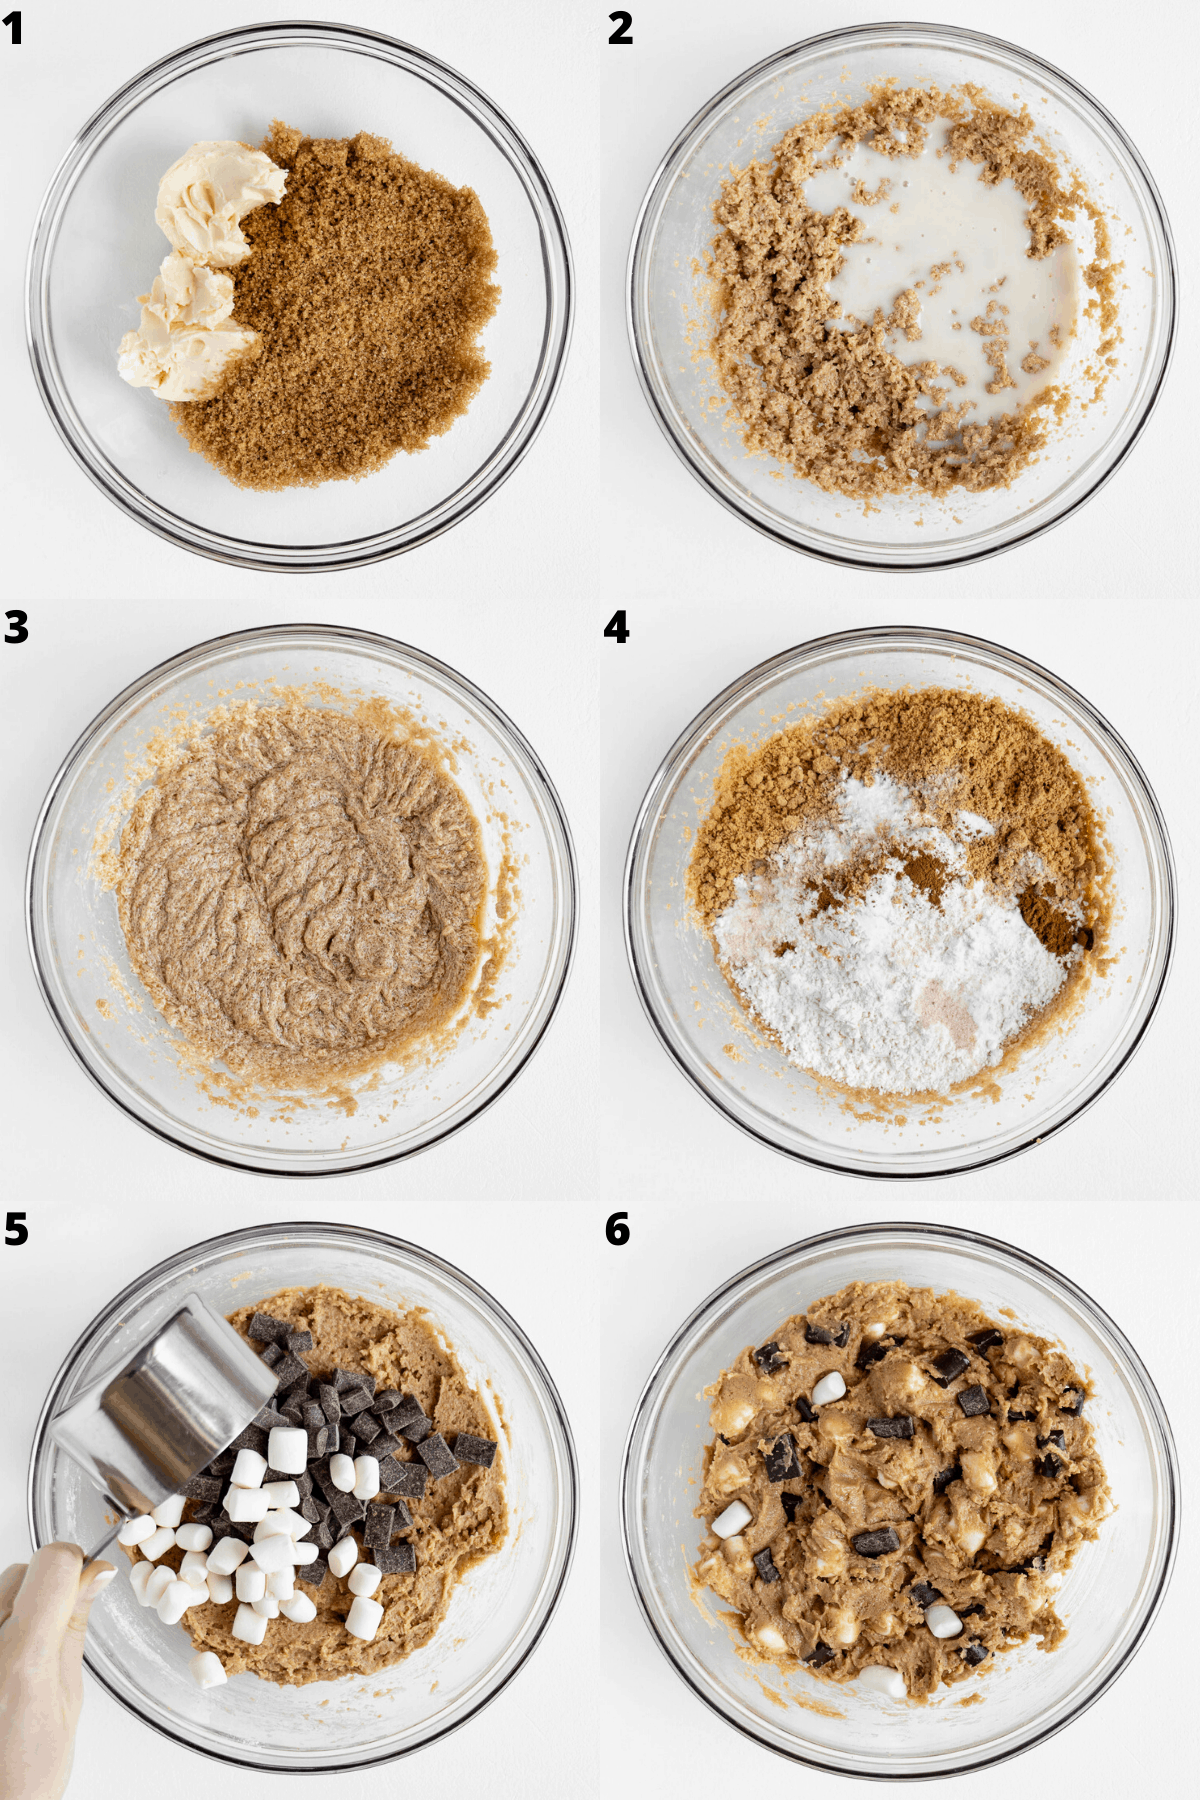 a six part photo collage showing the process of preparing vegan s'mores cookie dough